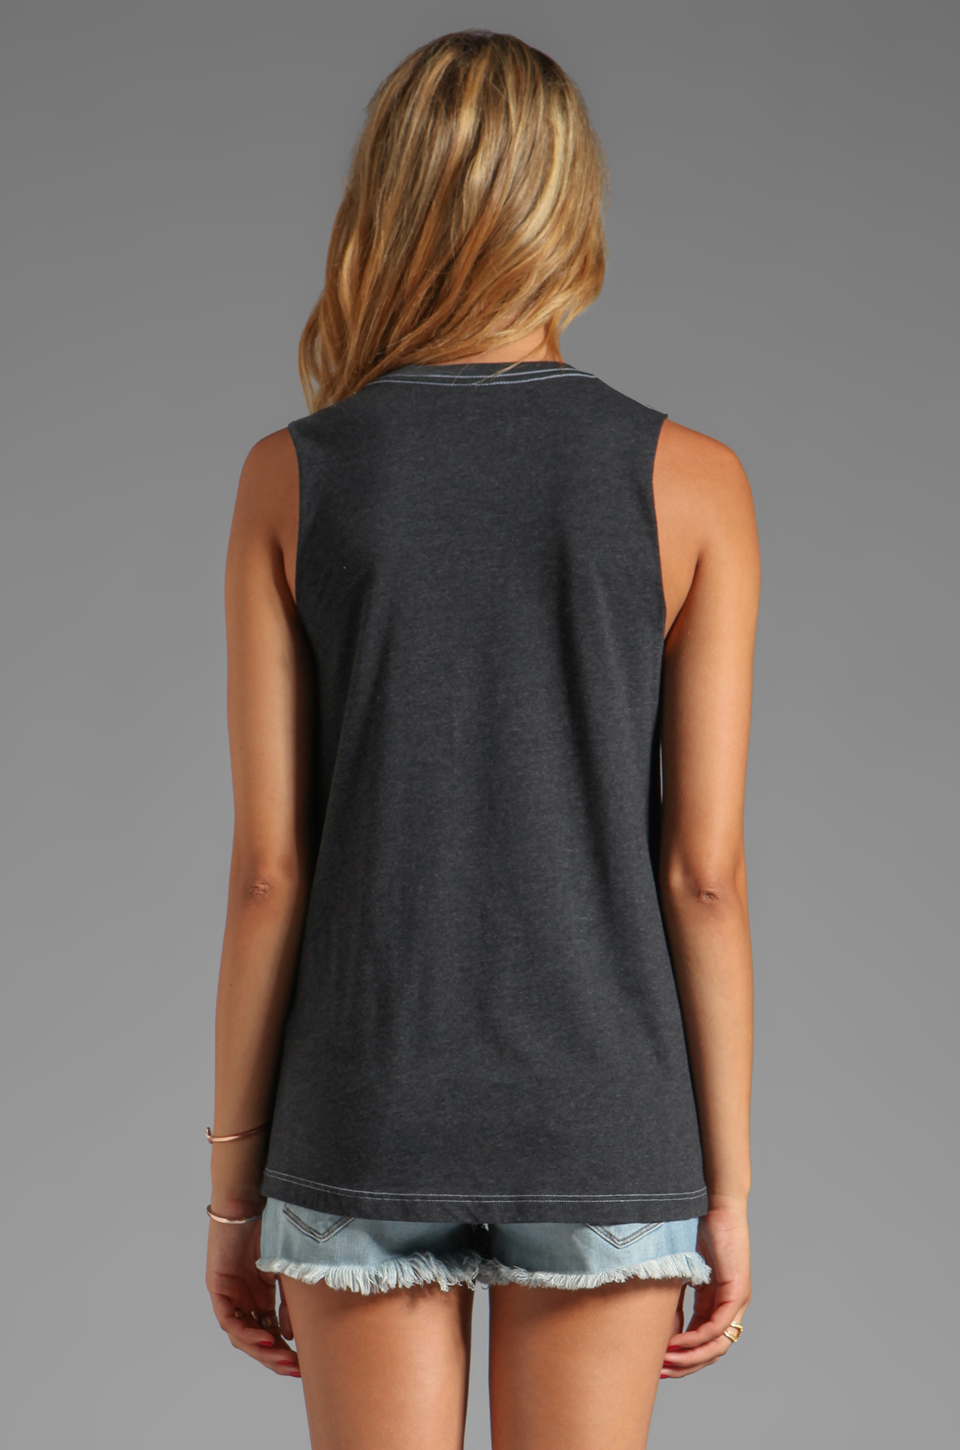 Local Celebrity Compton Muscle Tee in Black